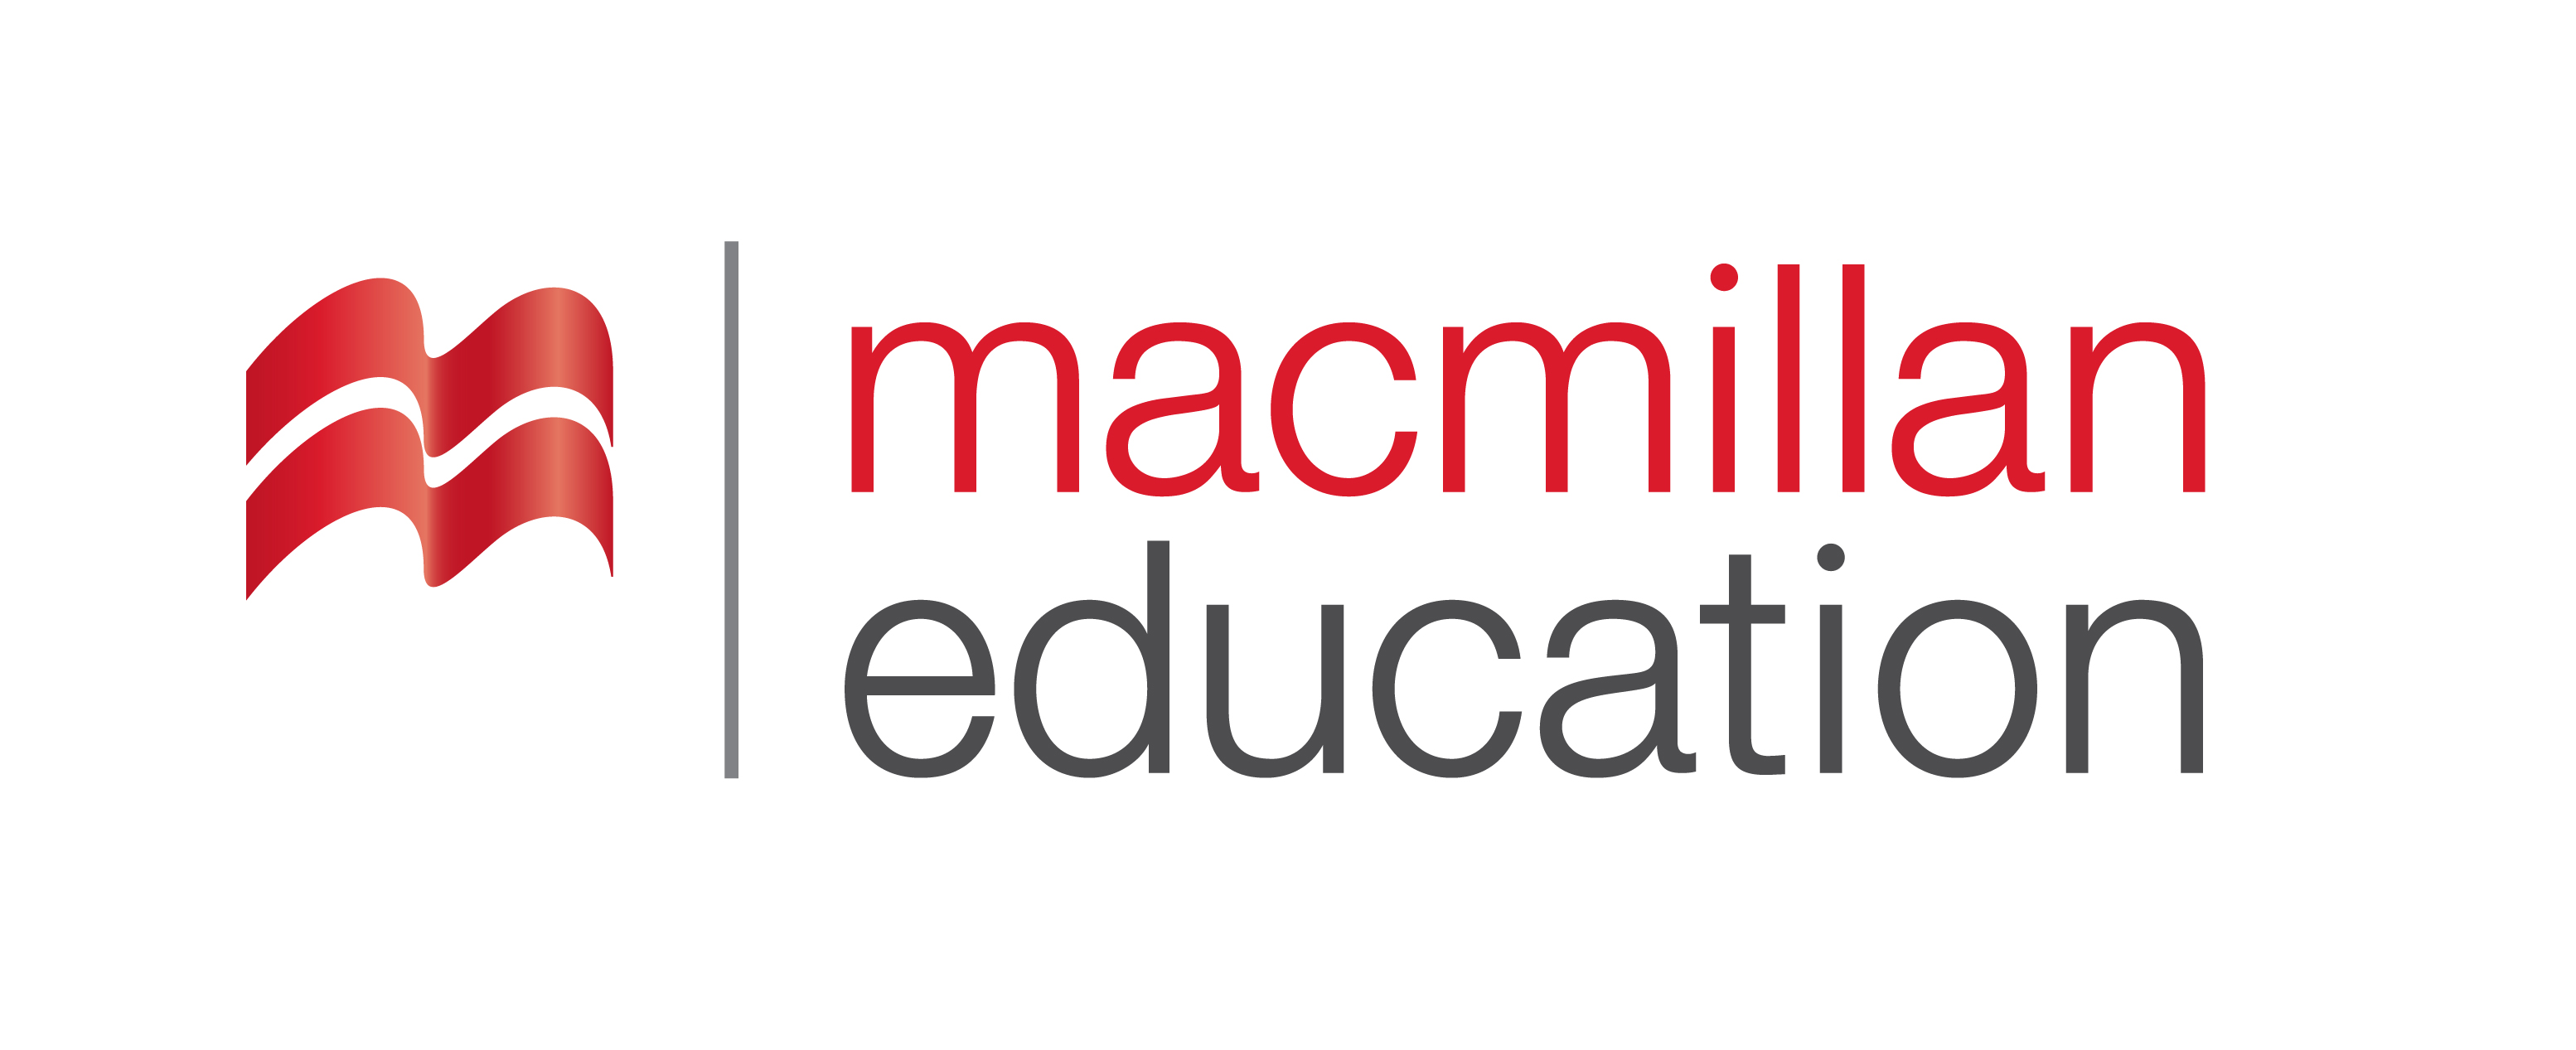 macmillan_education_logo.jpg